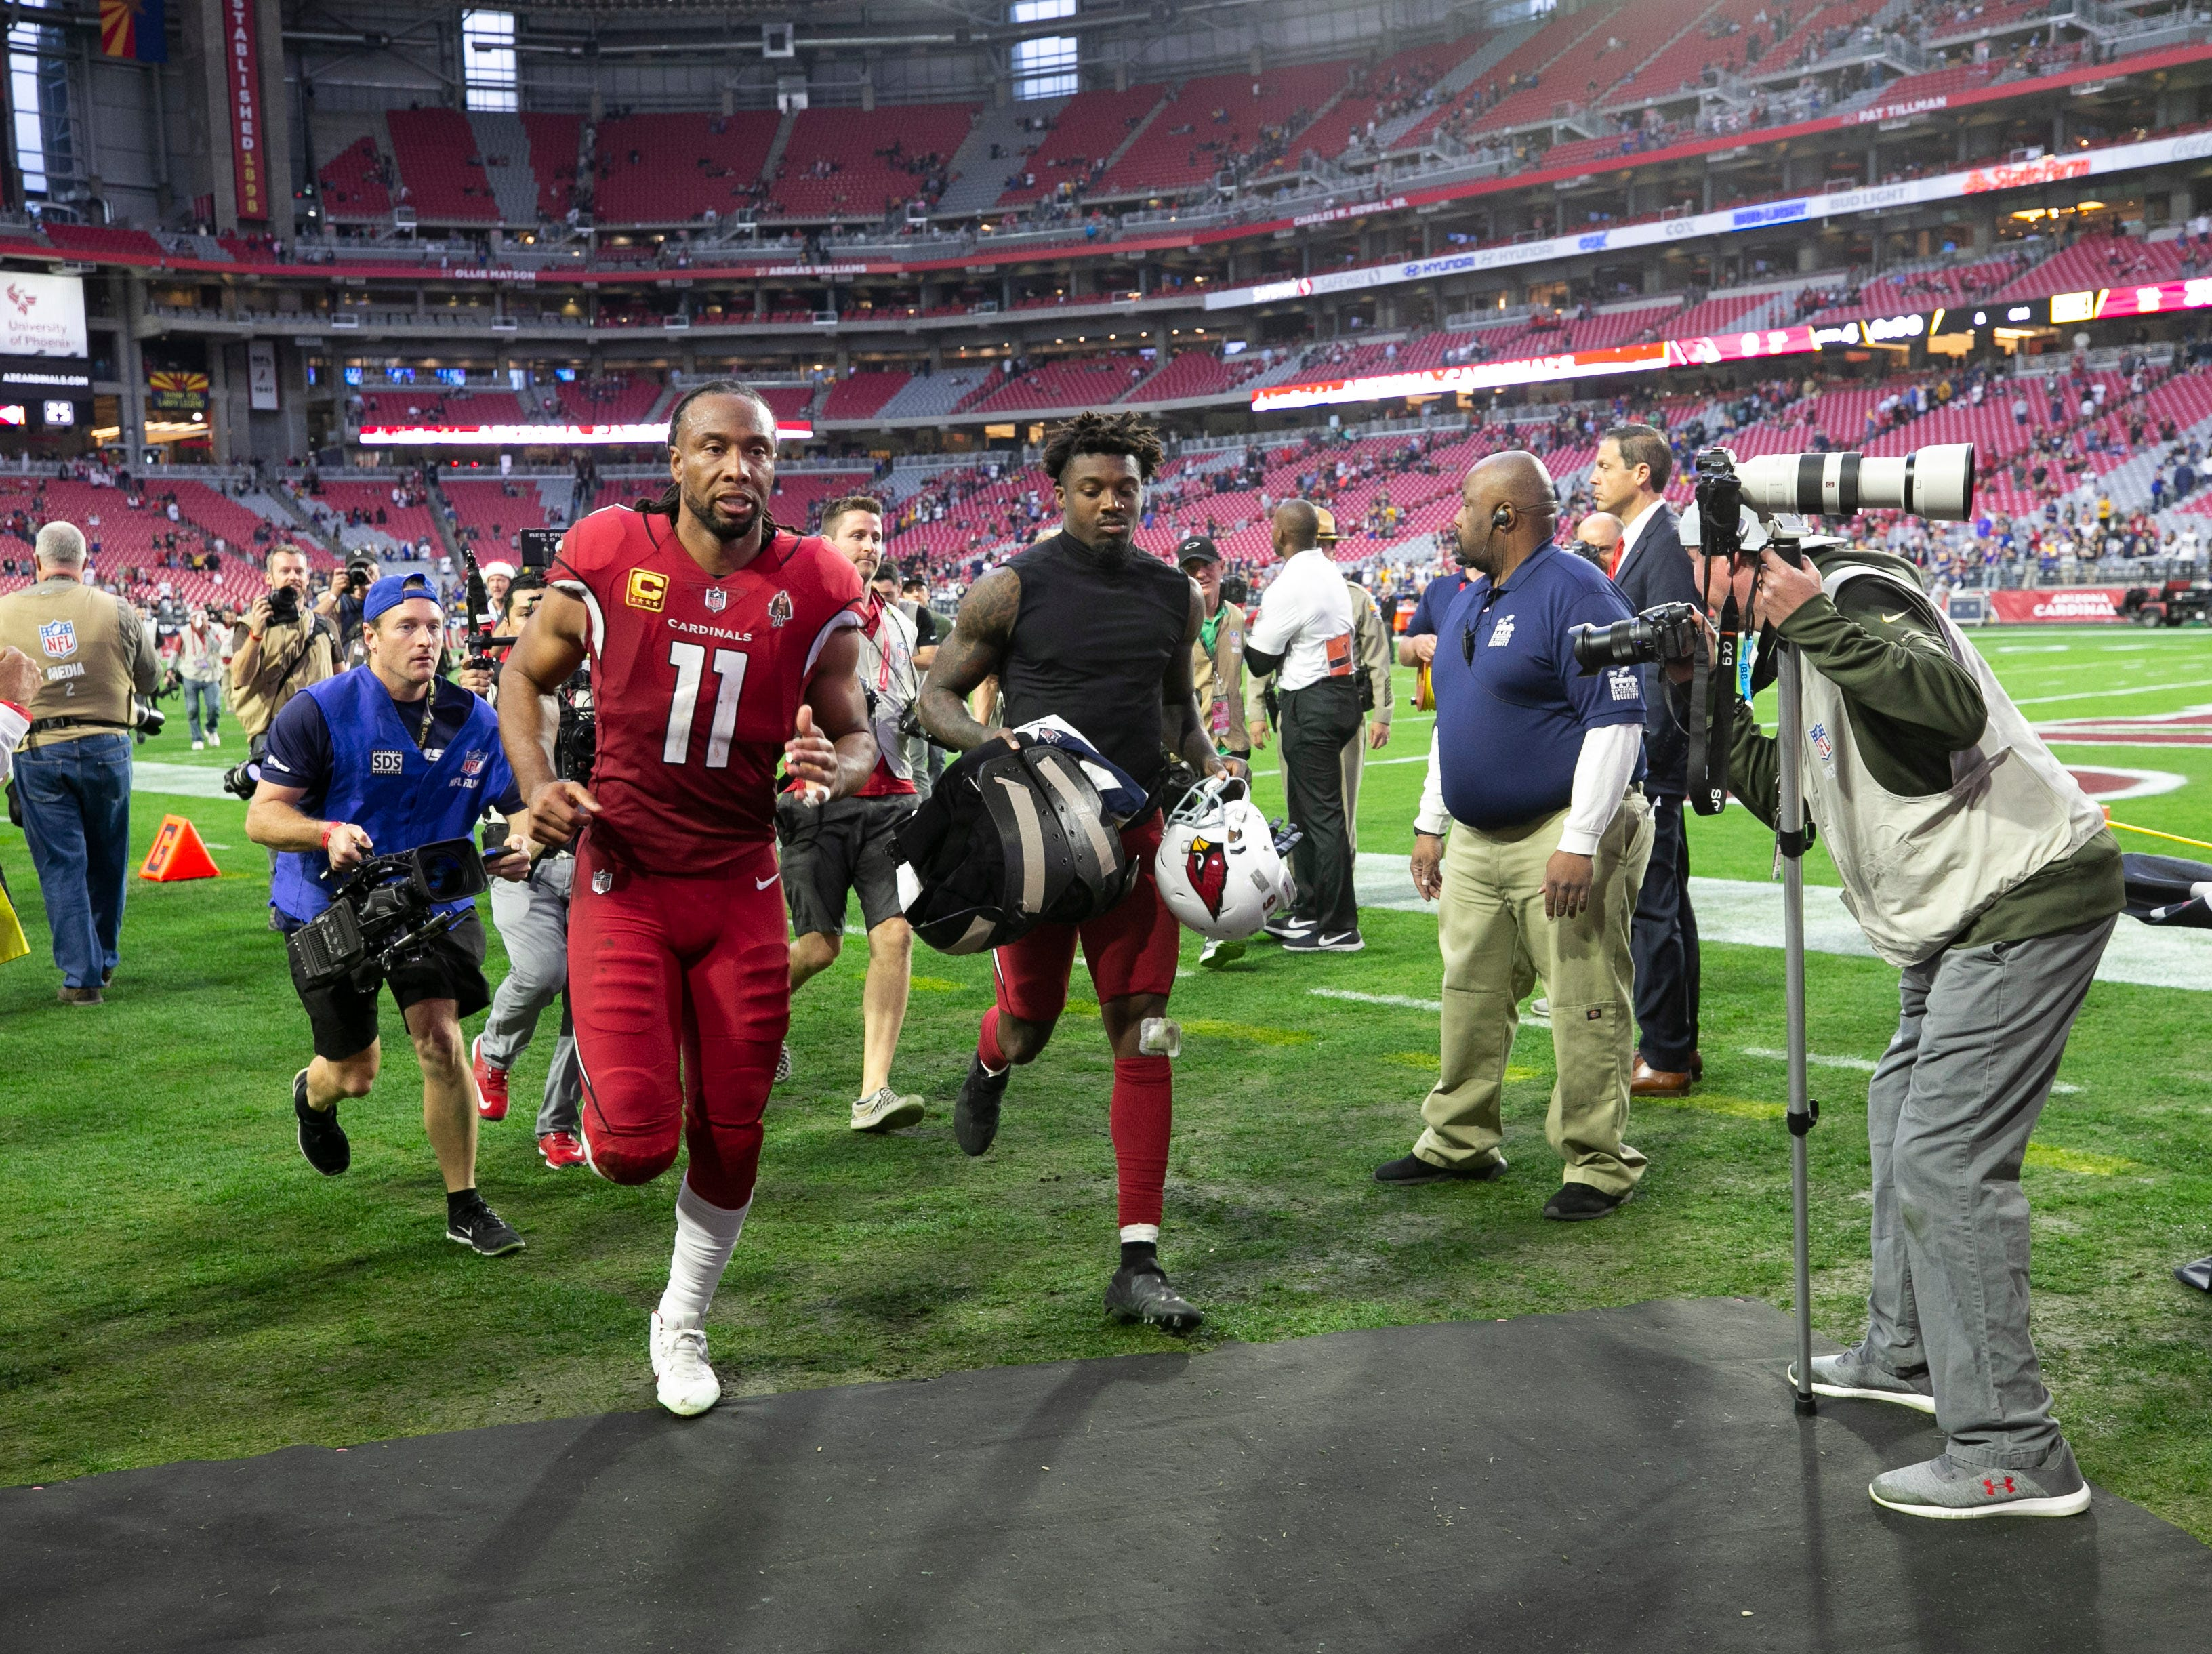 Cardinals wide receiver Larry Fitzgerald runs off the field after the Cardinals 31-9 loss to the Rams during the NFL game at State Farm Stadium in Glendale on Sunday, December 23, 2018.